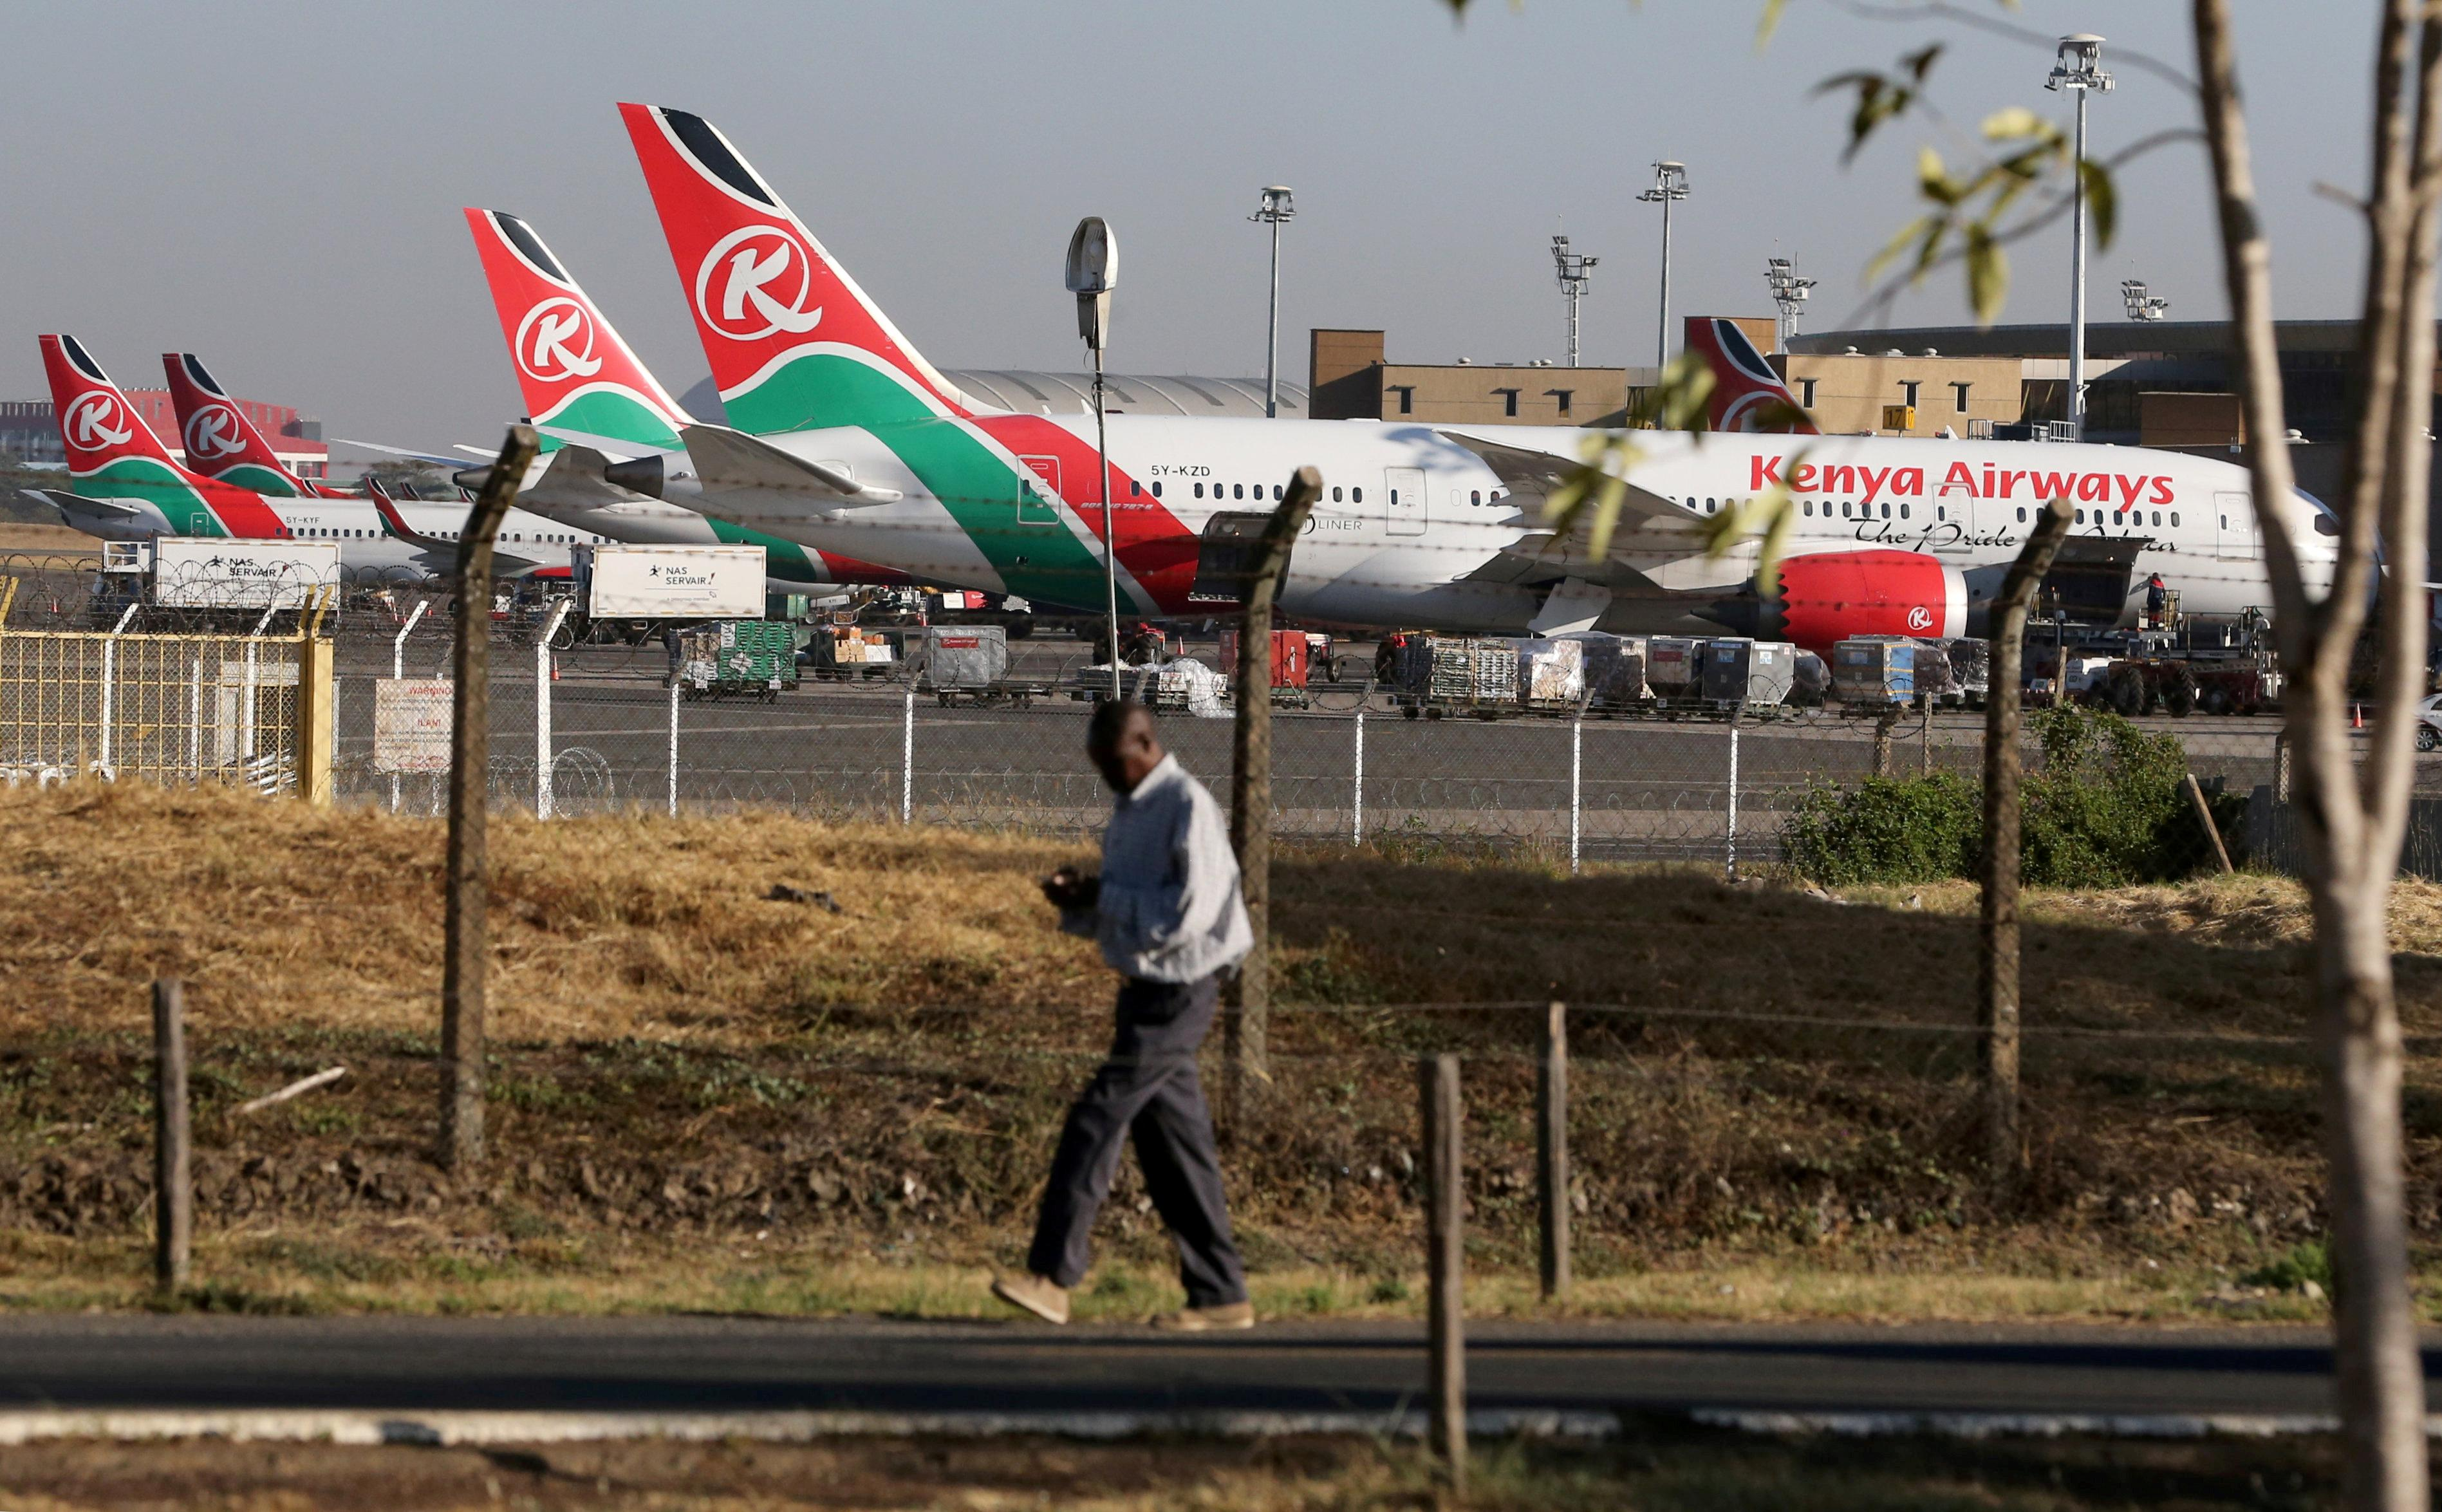 Exclusive: Kenya Airways goes full circle with two-year nationalization plan